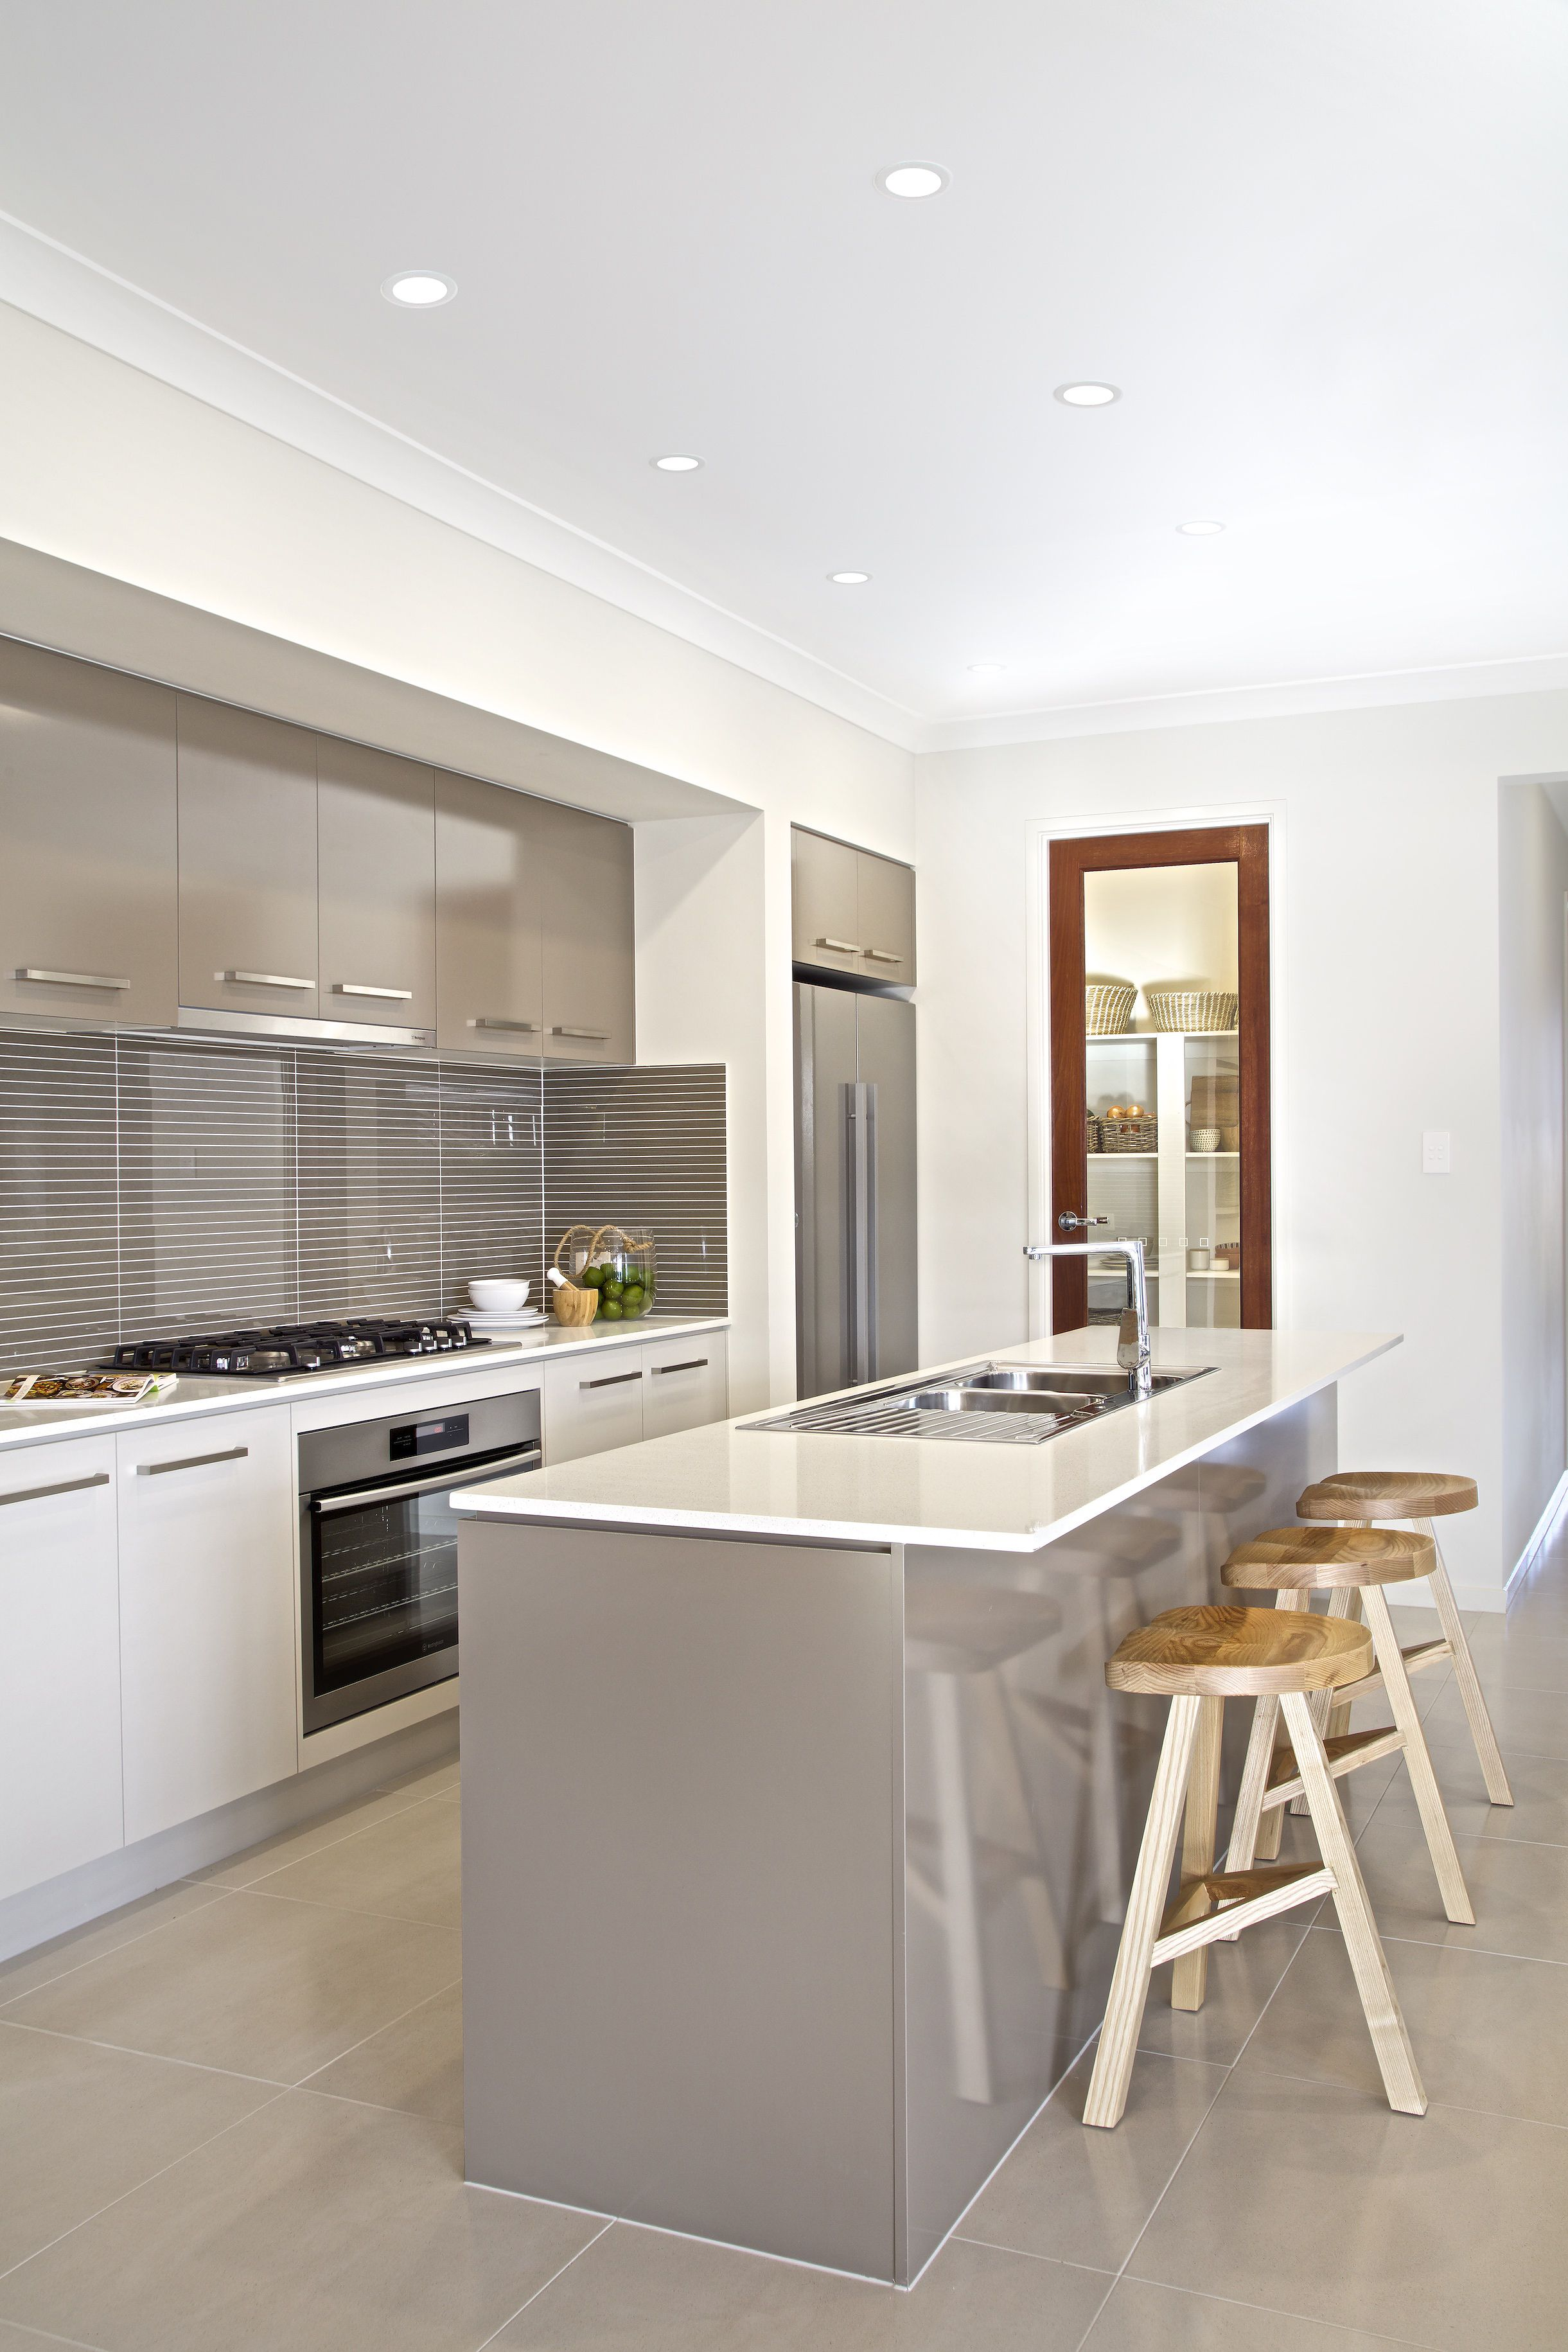 Seaview House Designed By Parsonson Architects: Clarendon Homes. Seaview 27. Kitchen And View Of Access To